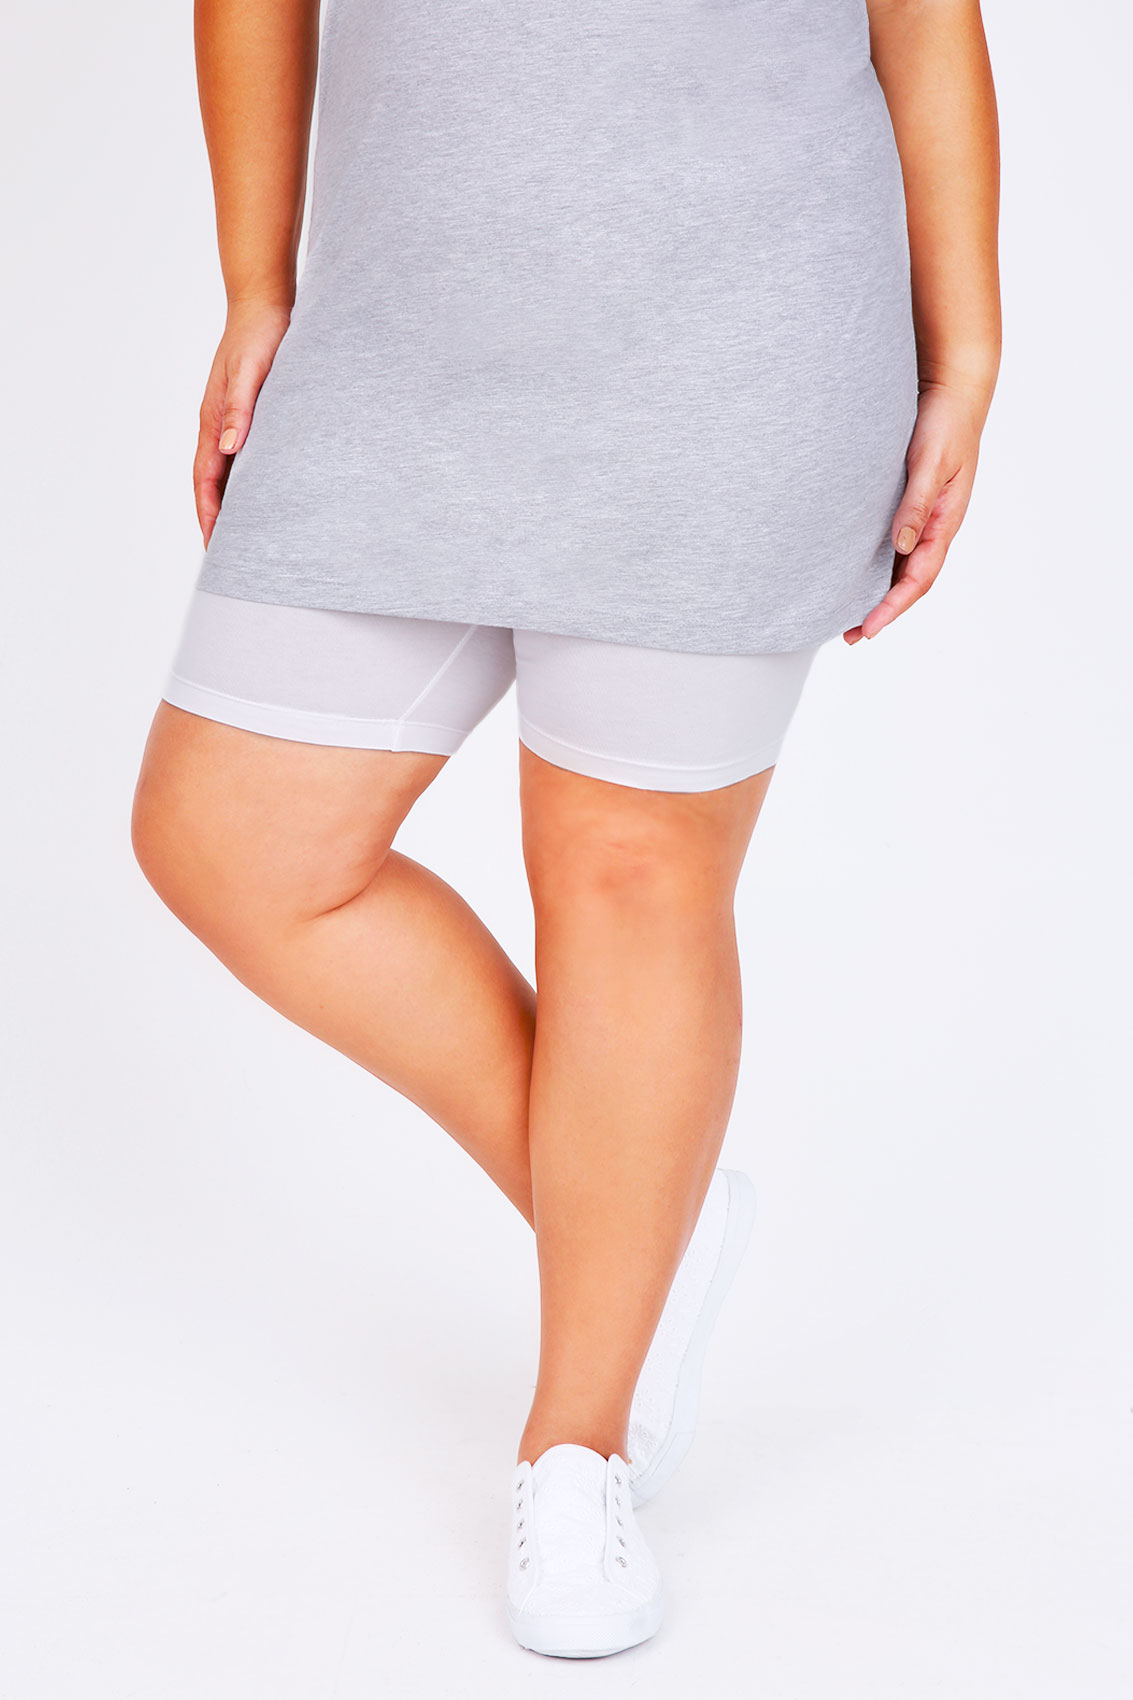 Women's Leggings - Plus Size () Legging Army. High Quality Leggings at Unbeatable Prices! Our Plus Size Leggings Fit Size Range 92% Polyester, 8% Spandex. We don't love our leggings because we sell them, we sell them because we LOVE them! Refine by Plus Size- Area White. $ Compare.